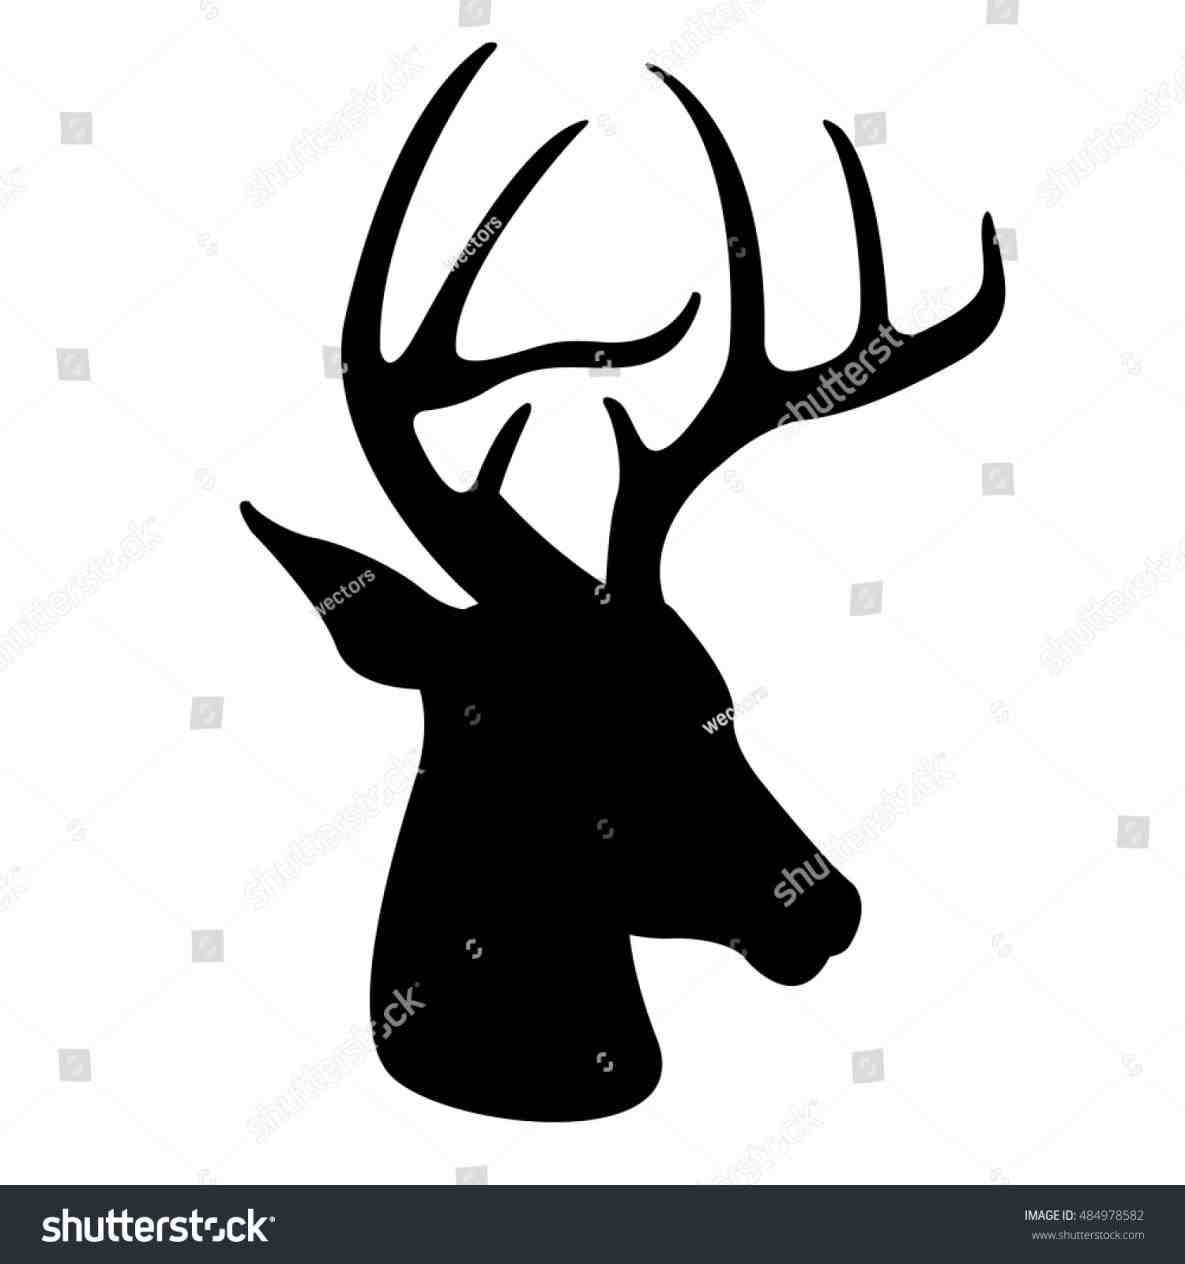 1185x1264 On Cliparts Christmas Reindeer Head Silhouette Free